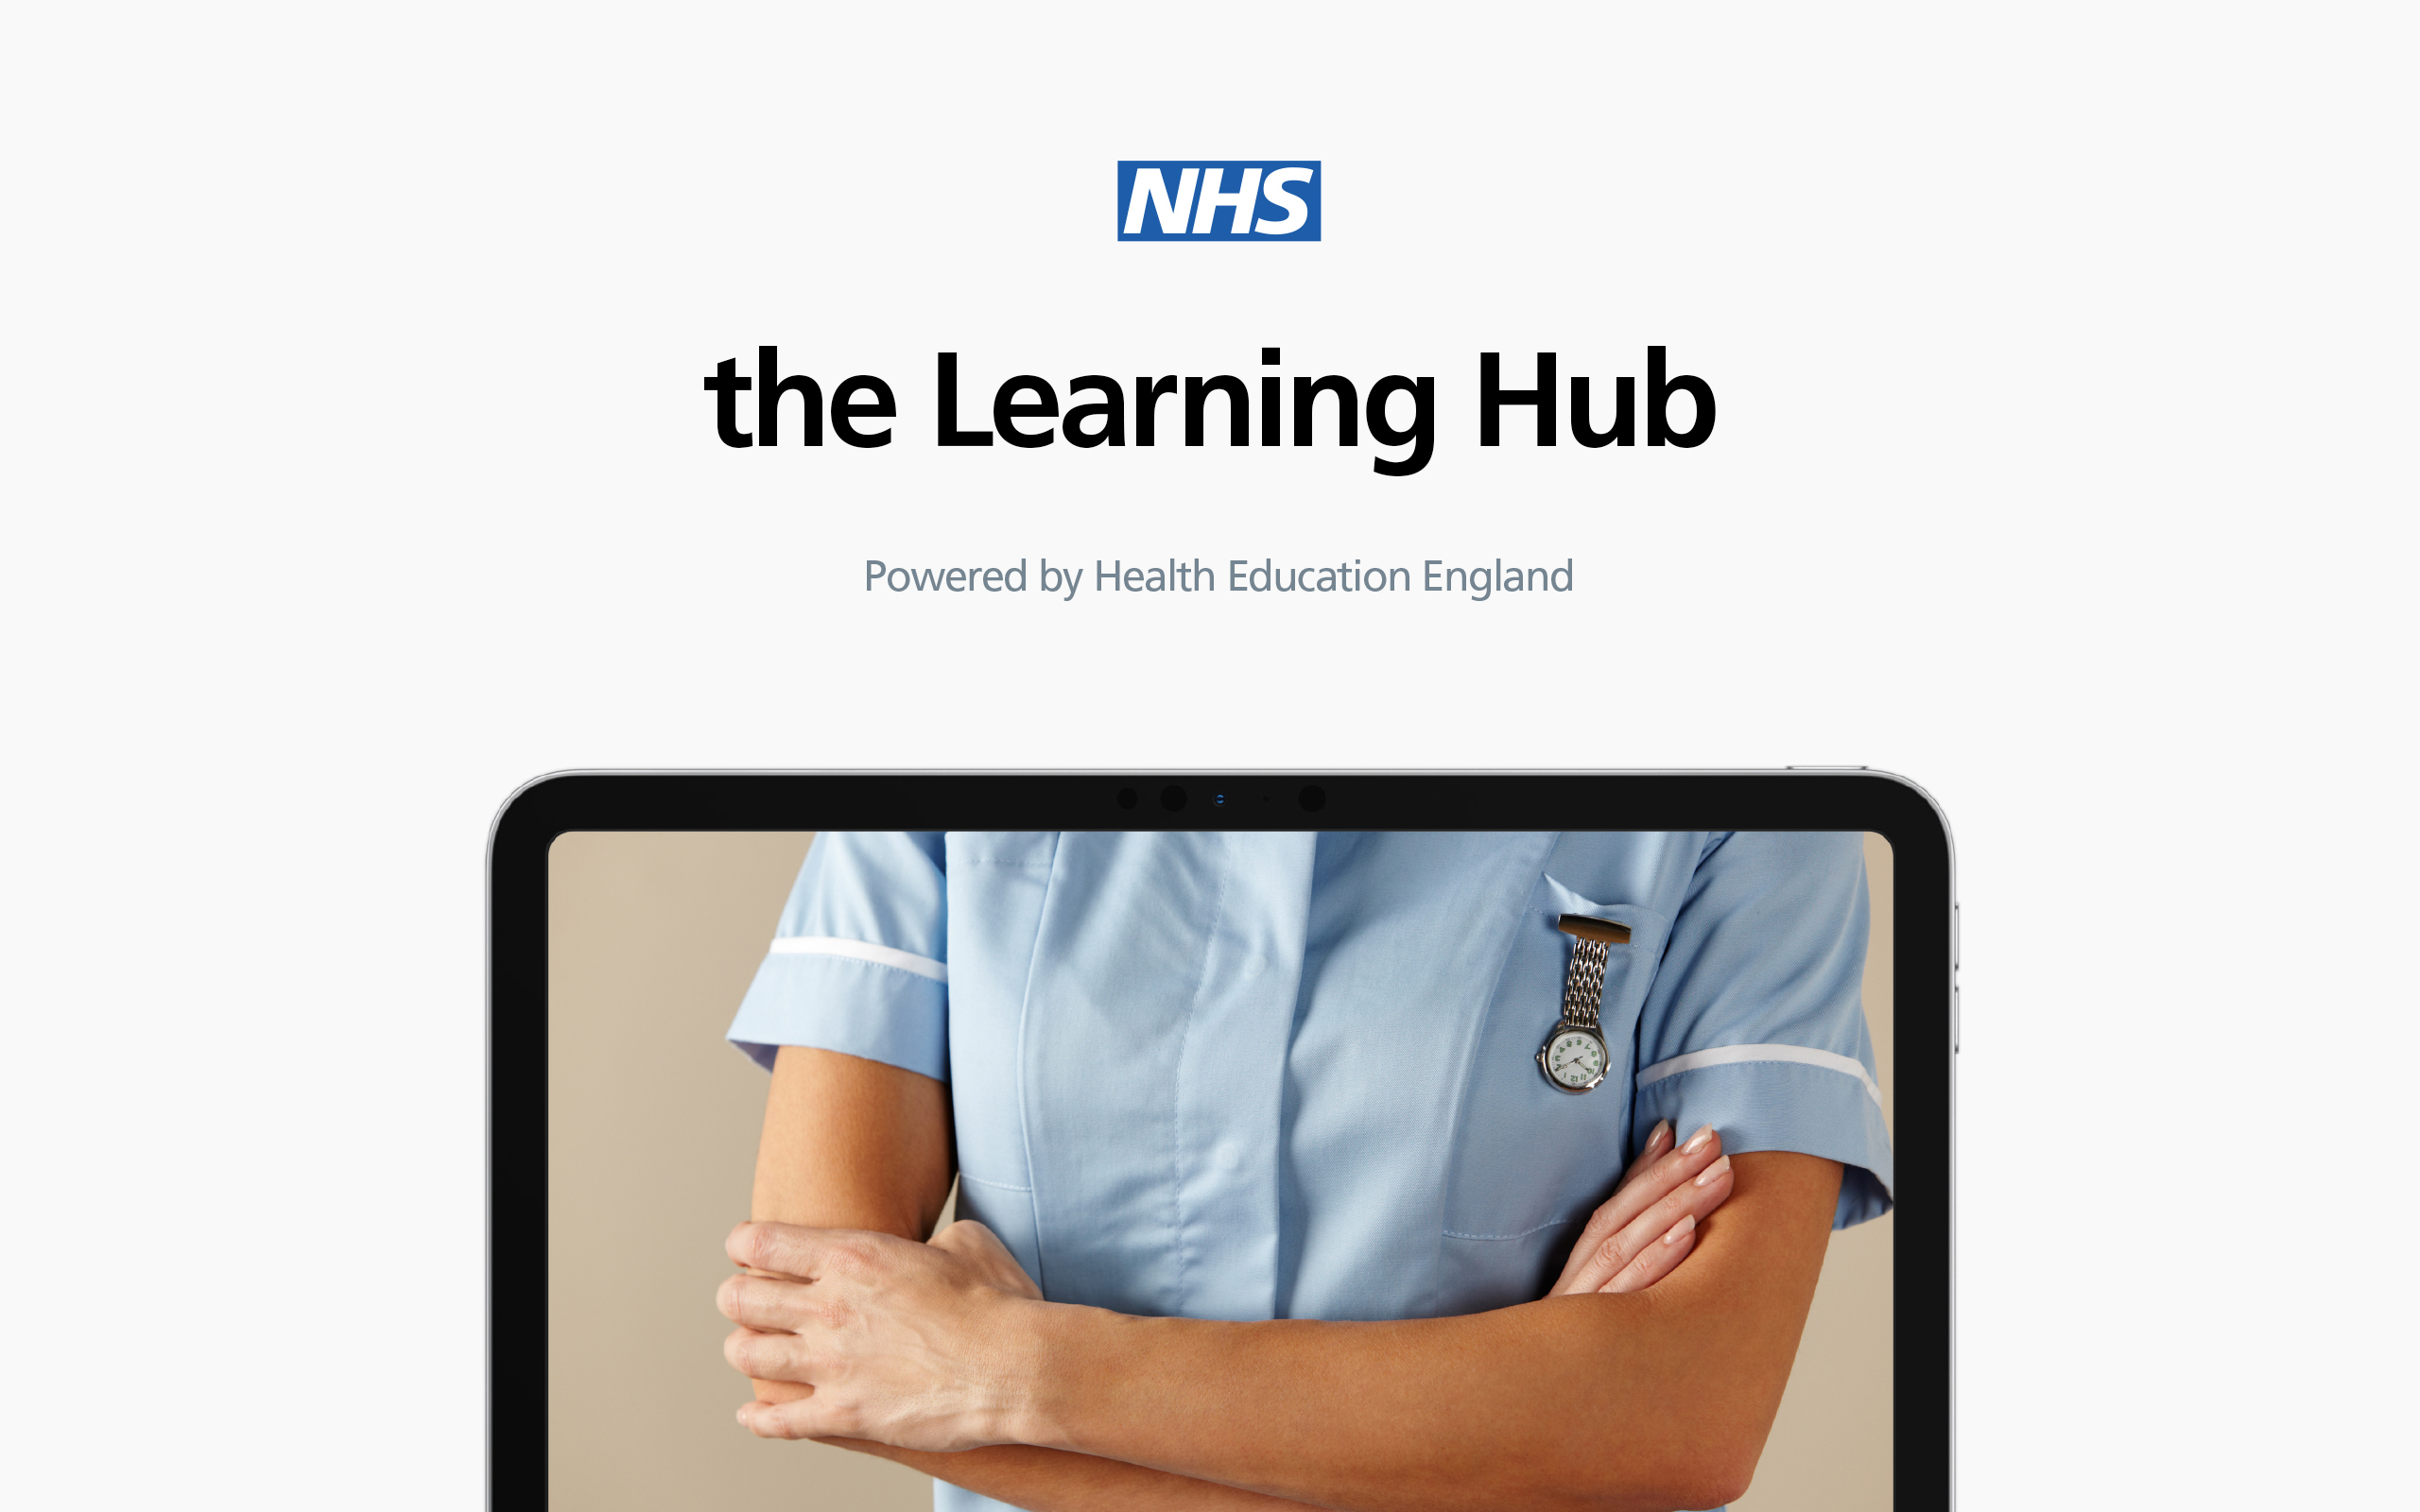 The Learning Hub, NHS Health Education England